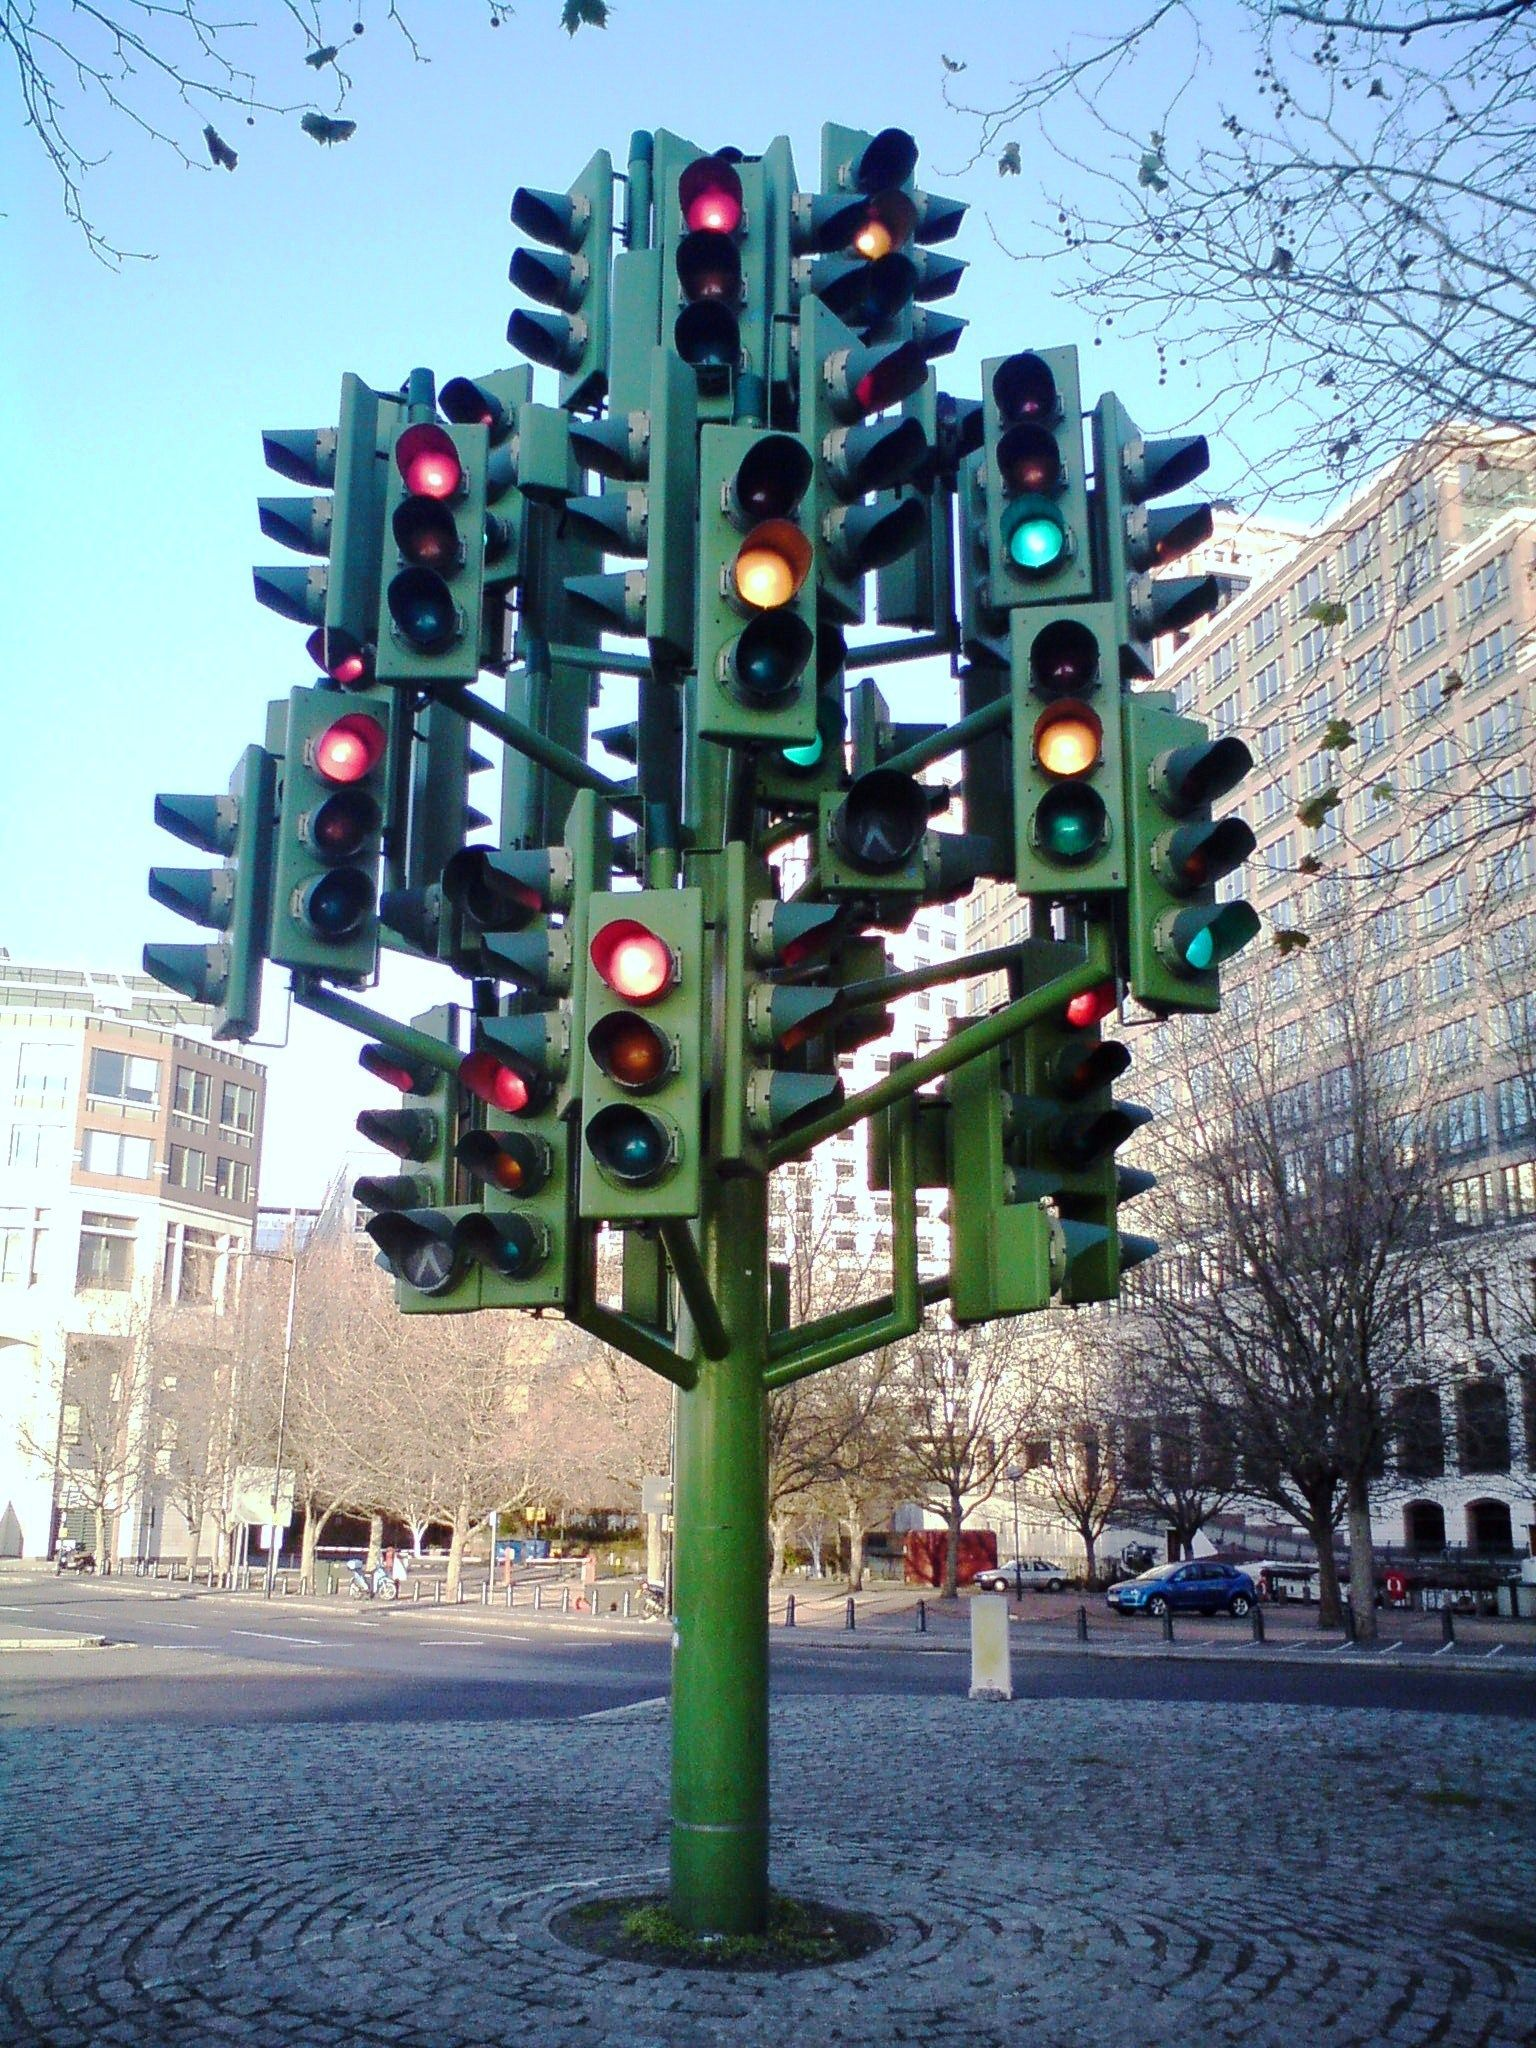 Facing A Red Light Street Art Traffic Light Sculpture Installation